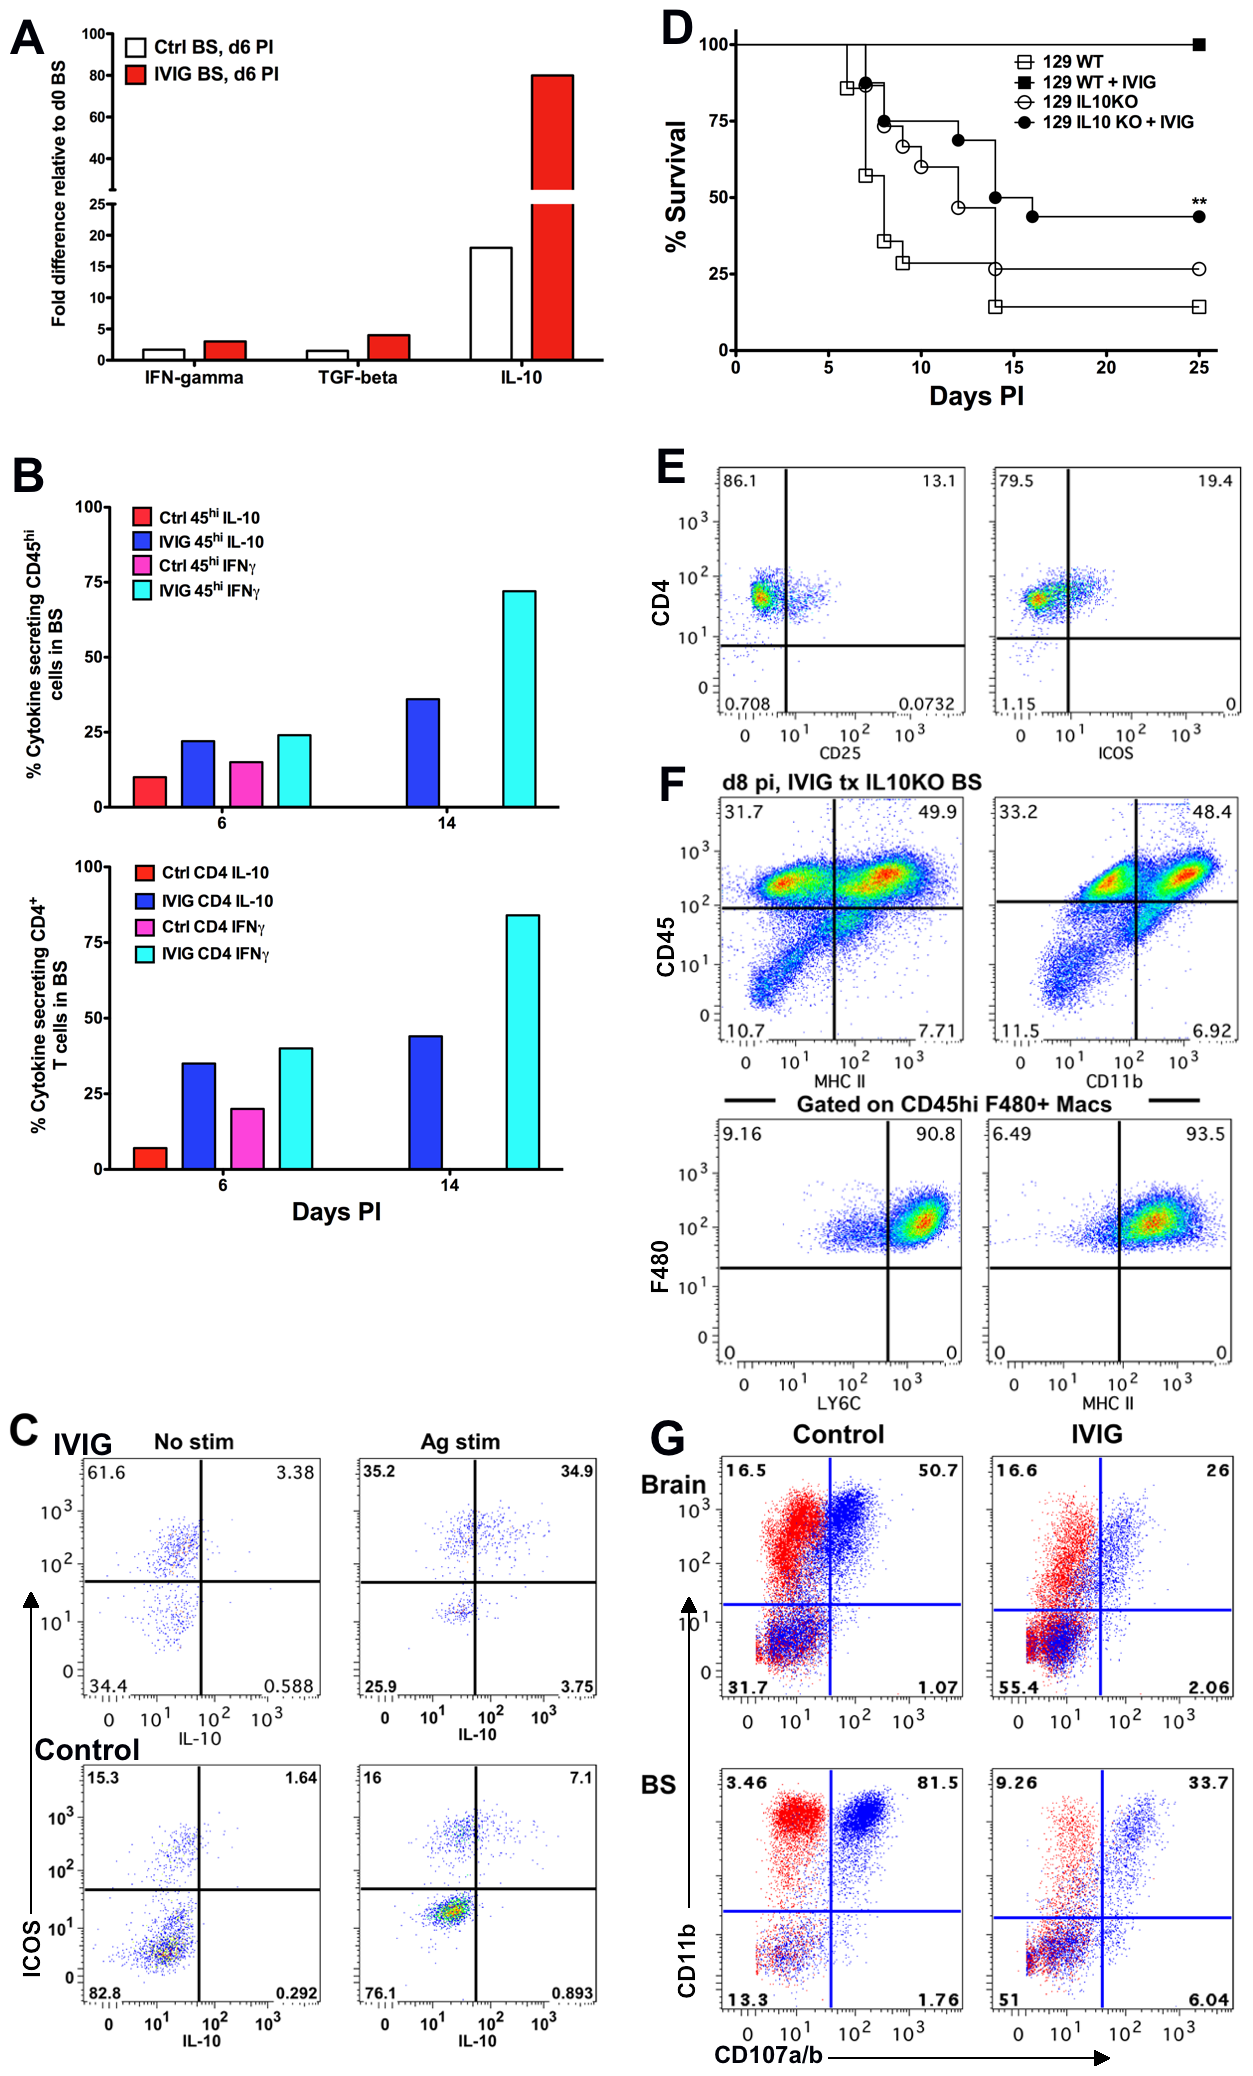 IL-10 is required for IVIG's anti-inflammatory effects in the CNS.